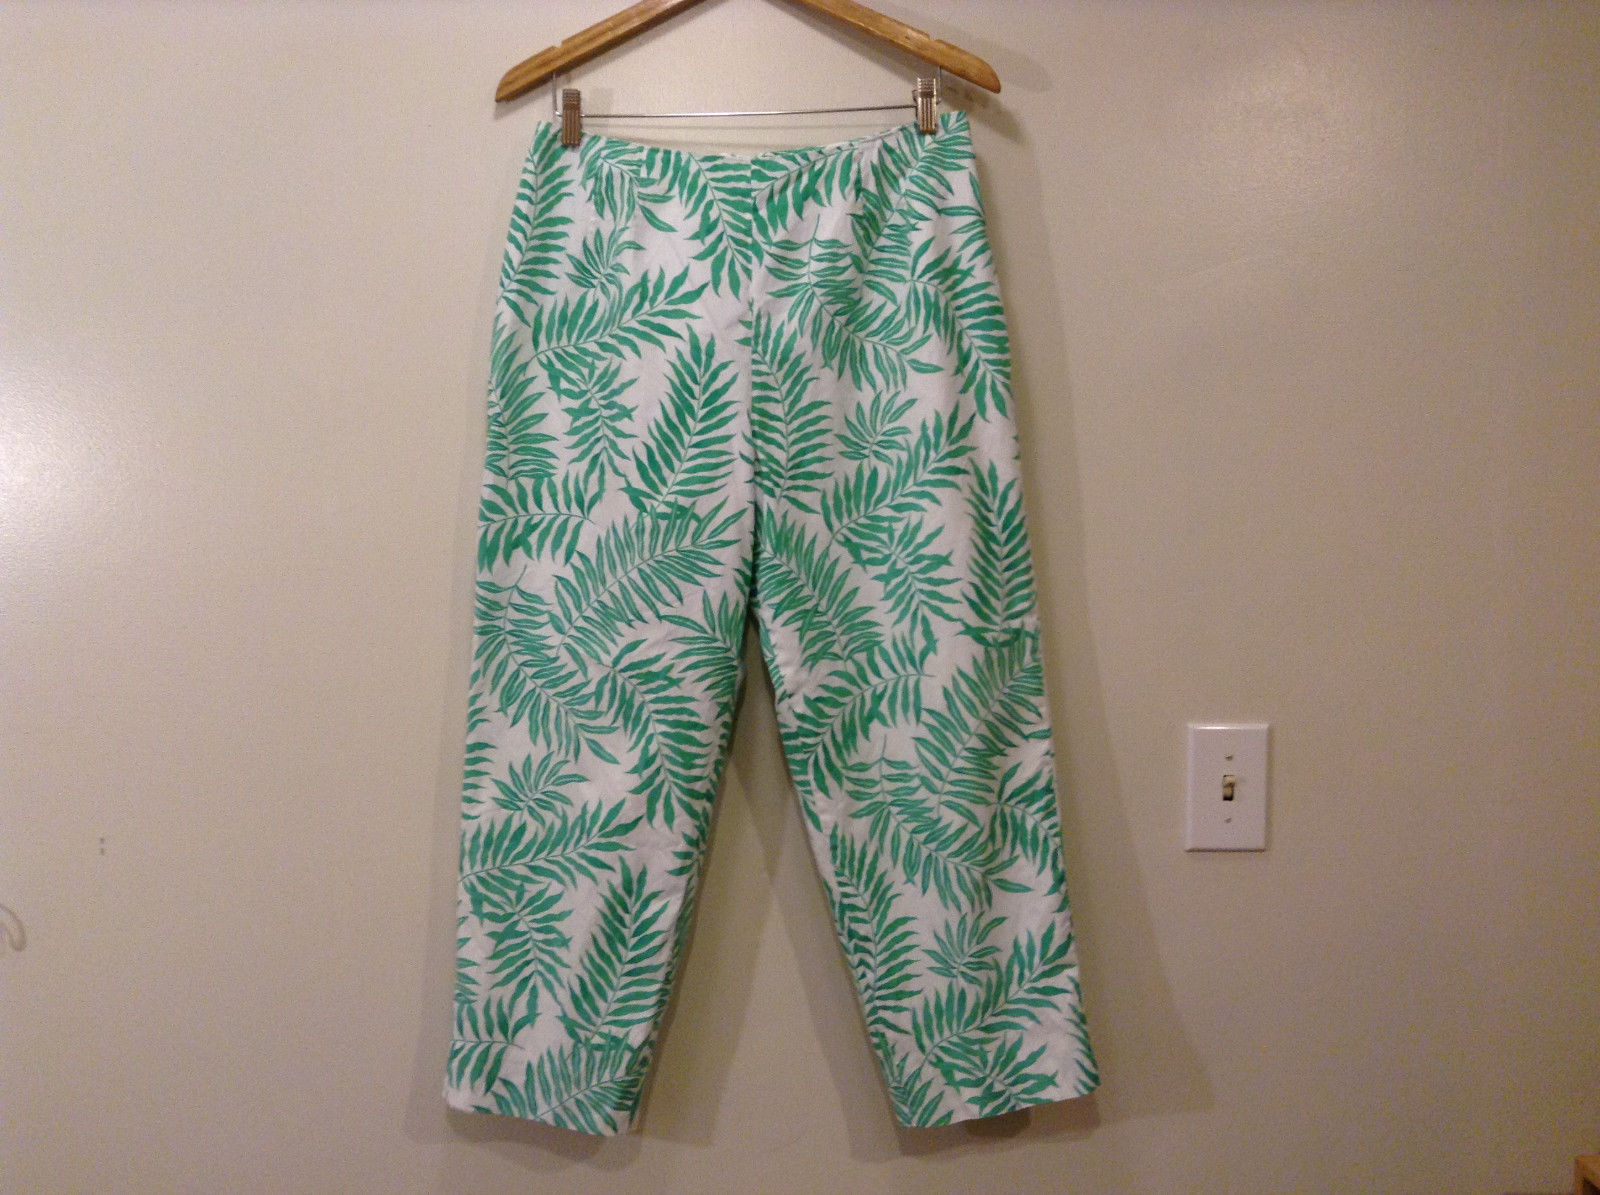 Talbots Ladies White/Green Leaves Cropped Pants 100% Cotton, Size 14, lined